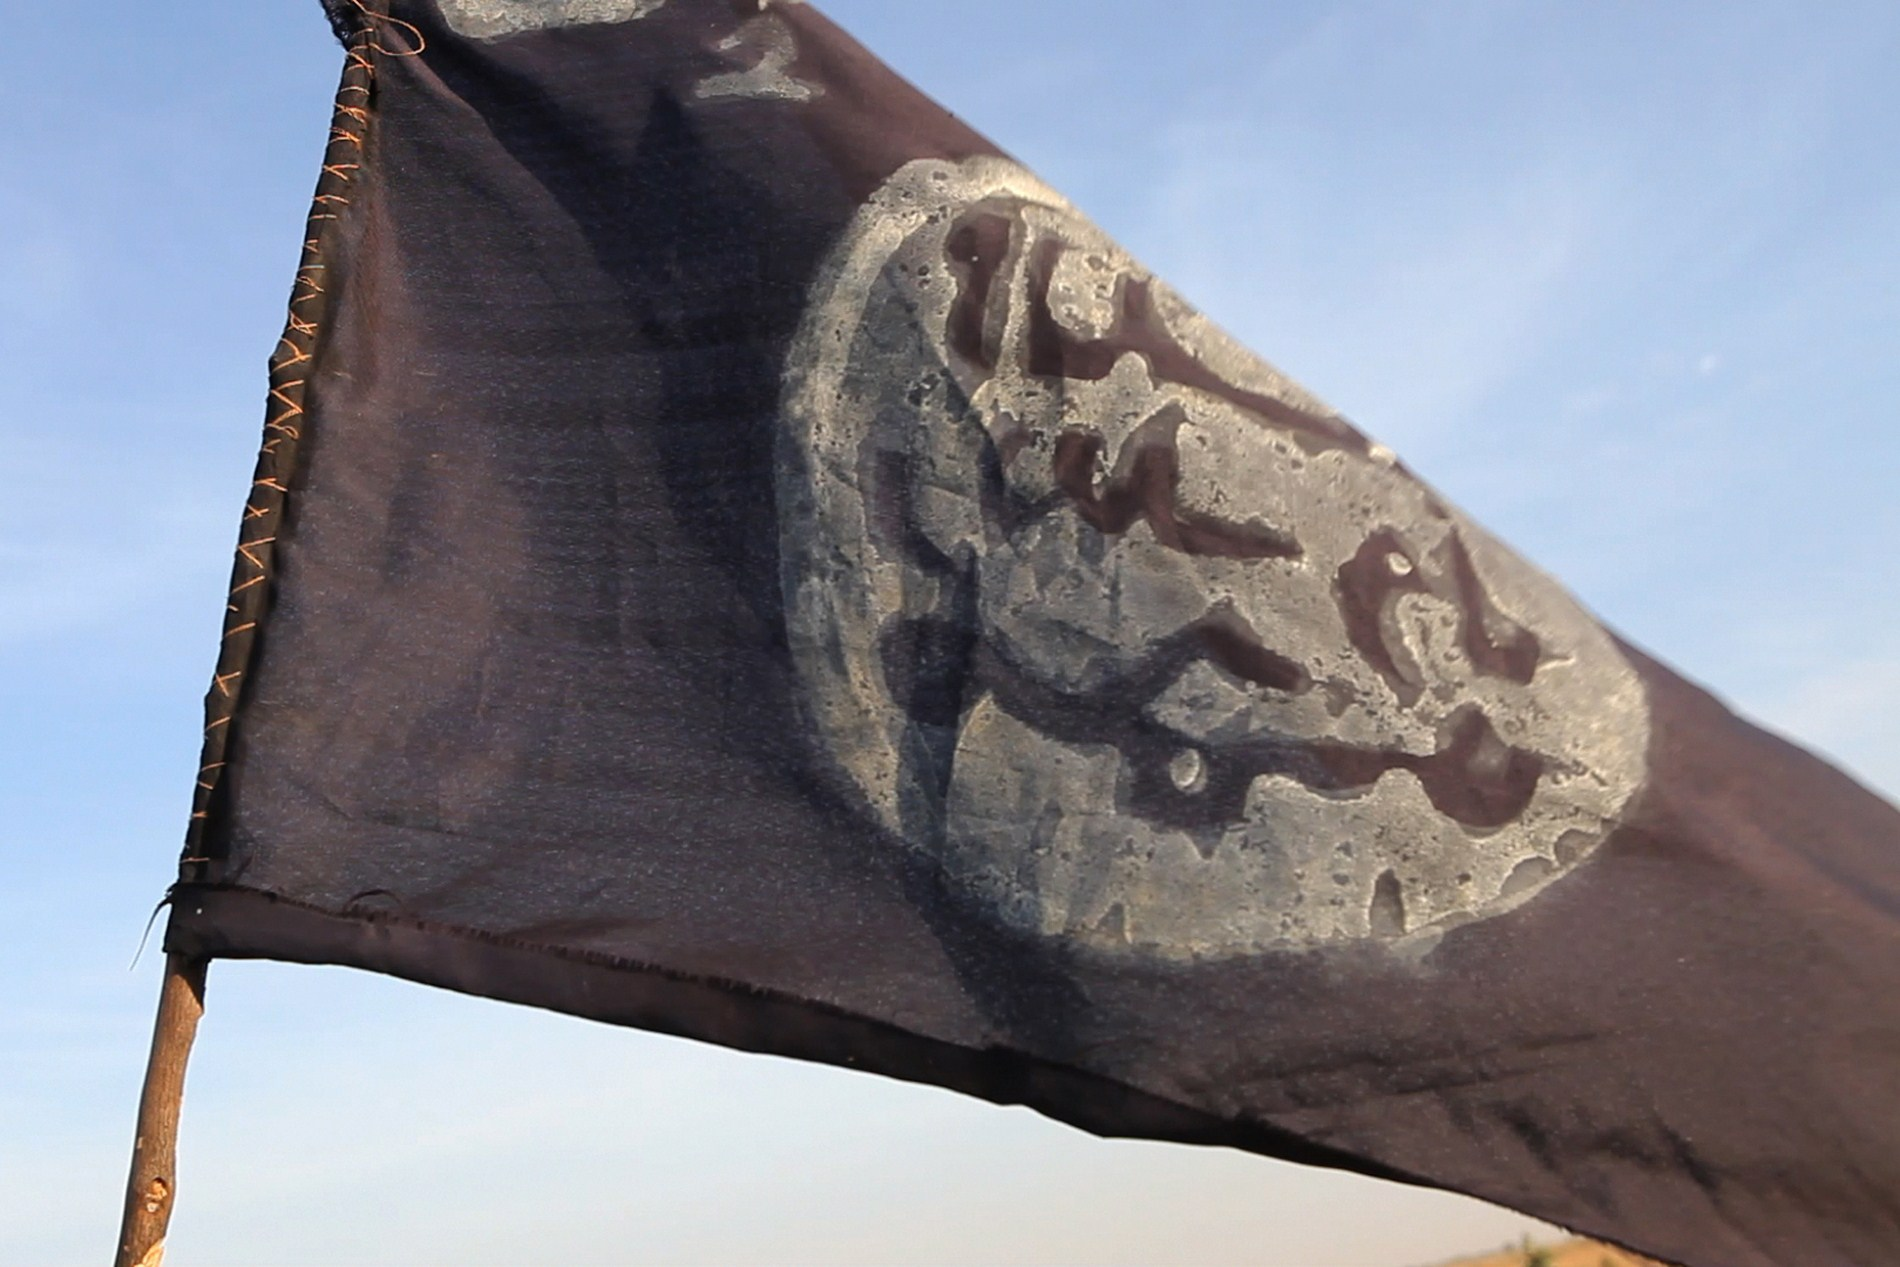 A Boko Haram flag flutters from an abandoned command post in Gamboru deserted after Chadian troops chased them from the border town on Feb. 4, 2015.